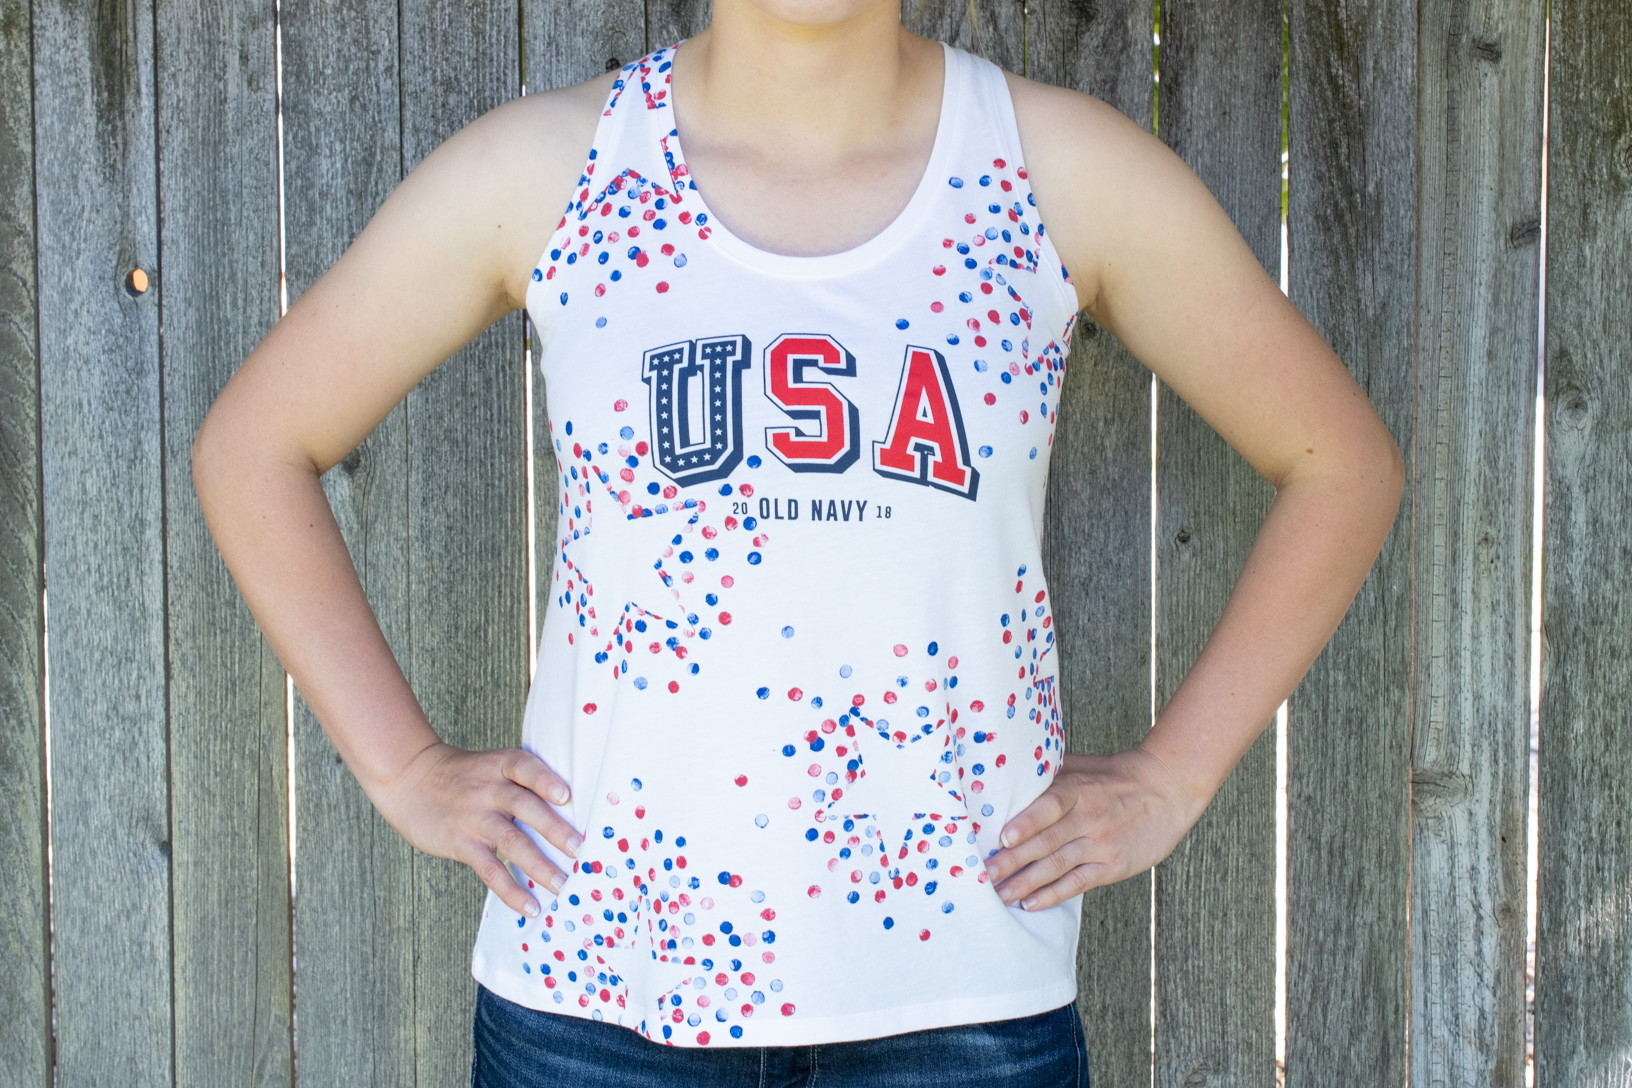 0c46eaaa53bb8 6 Ways to Bling Out Your $5 Old Navy Shirt for the 4th of July - The Krazy  Coupon Lady